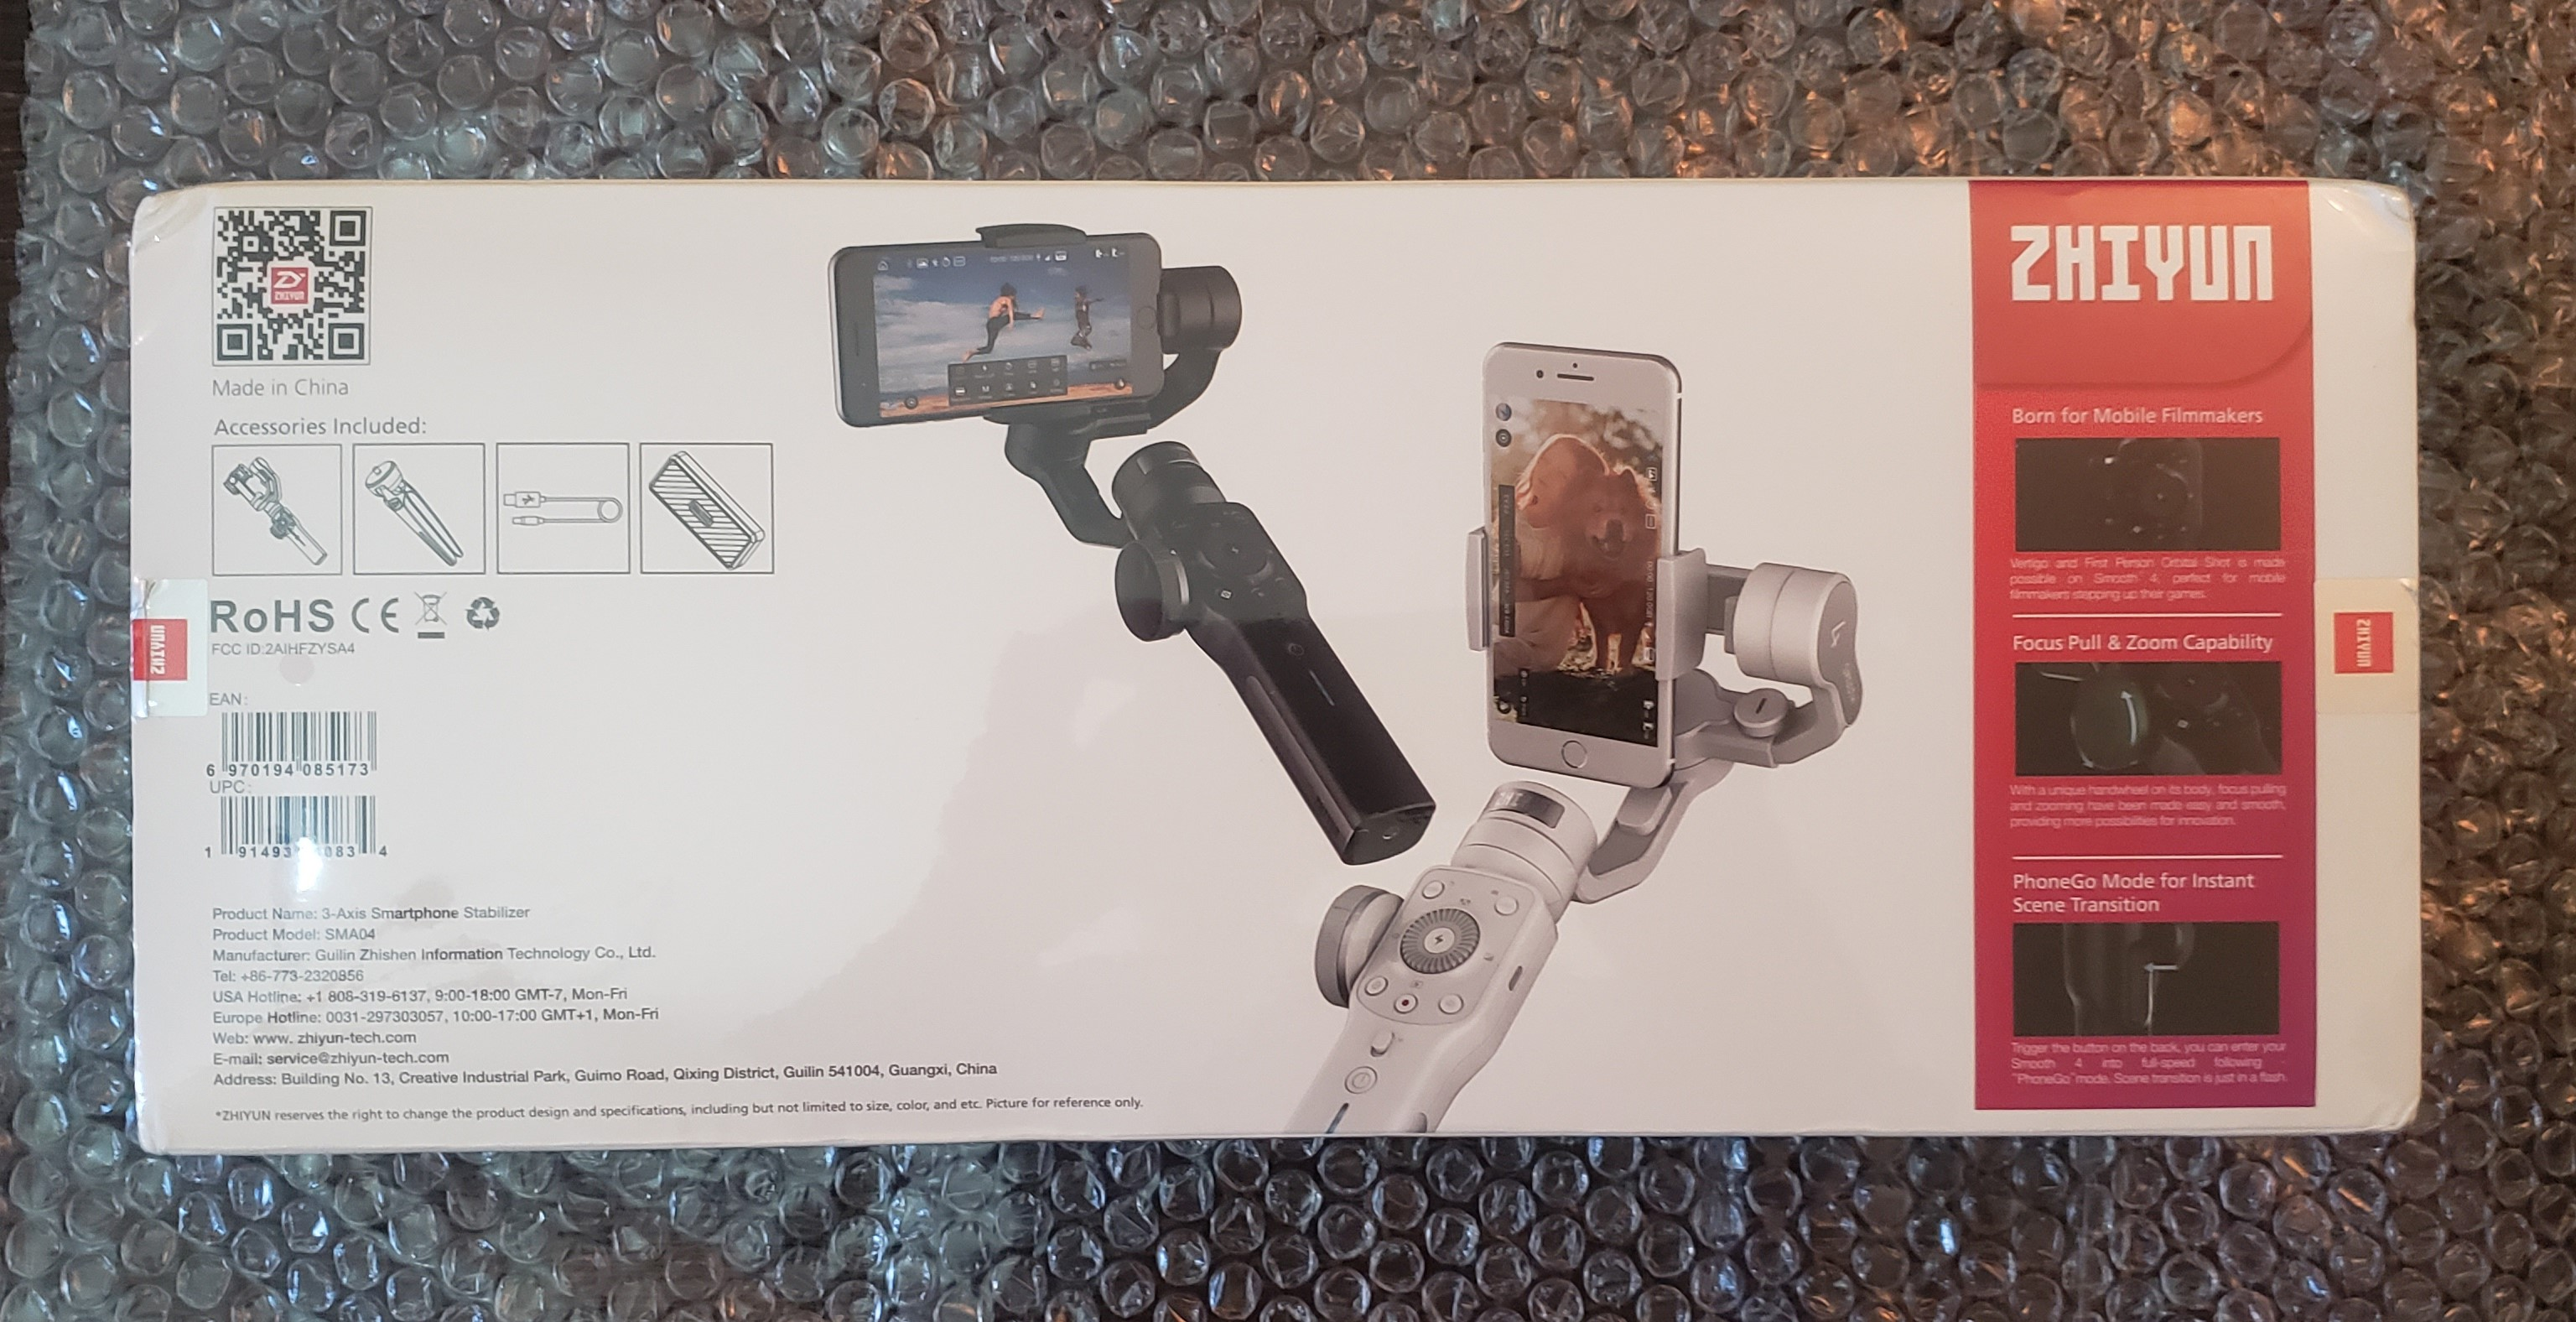 ZHIYUN Official Smooth 4 3 Axis Handheld Phone Gimbal Stabilizer for Smartphones iPhone XS 11 HUAWEI Xiaomi Samsung Galaxy|stabilizer phone|stabilizer handheldstabilizer 3-axis - AliExpress